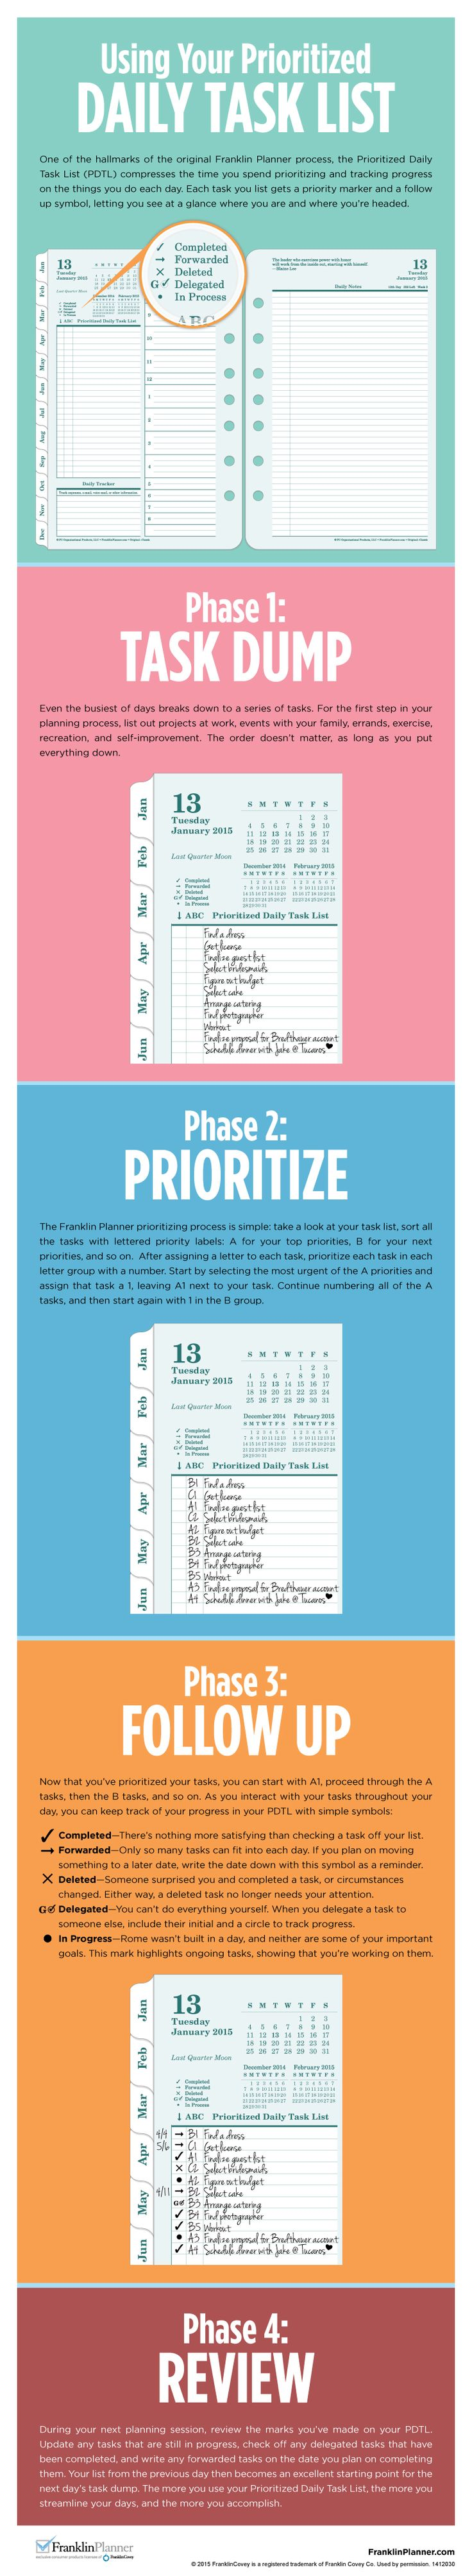 Learn how to use your FranklinPlanner Prioritized Daily Task List